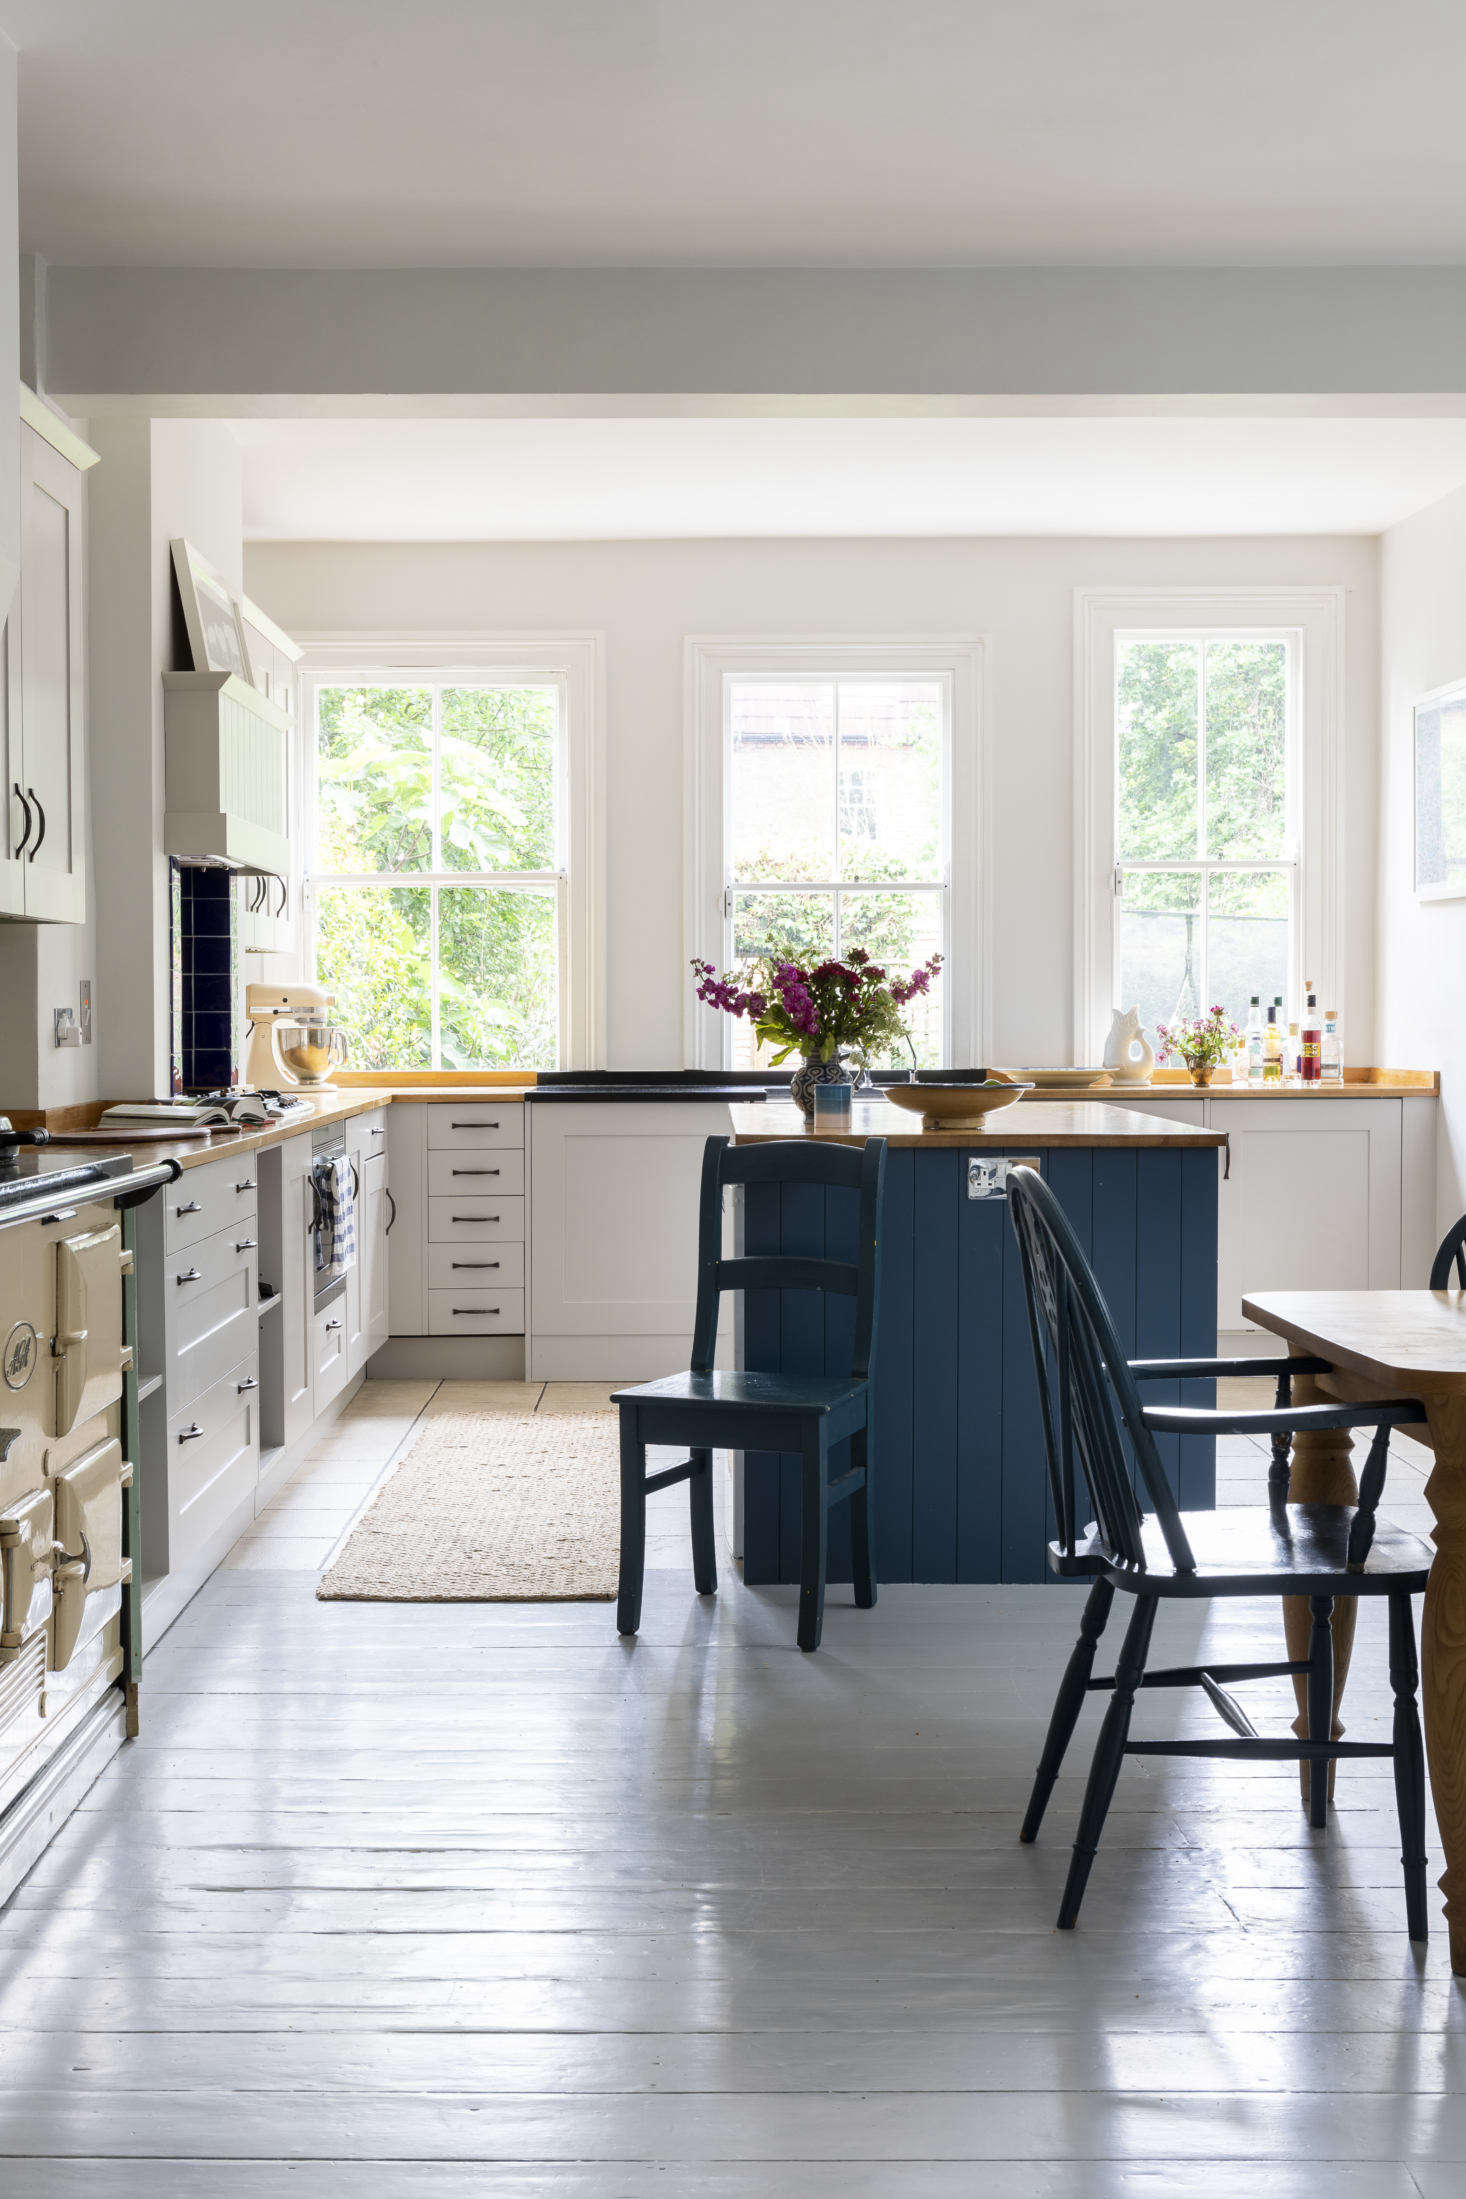 Kitchen/diner in this Victorian family home, London